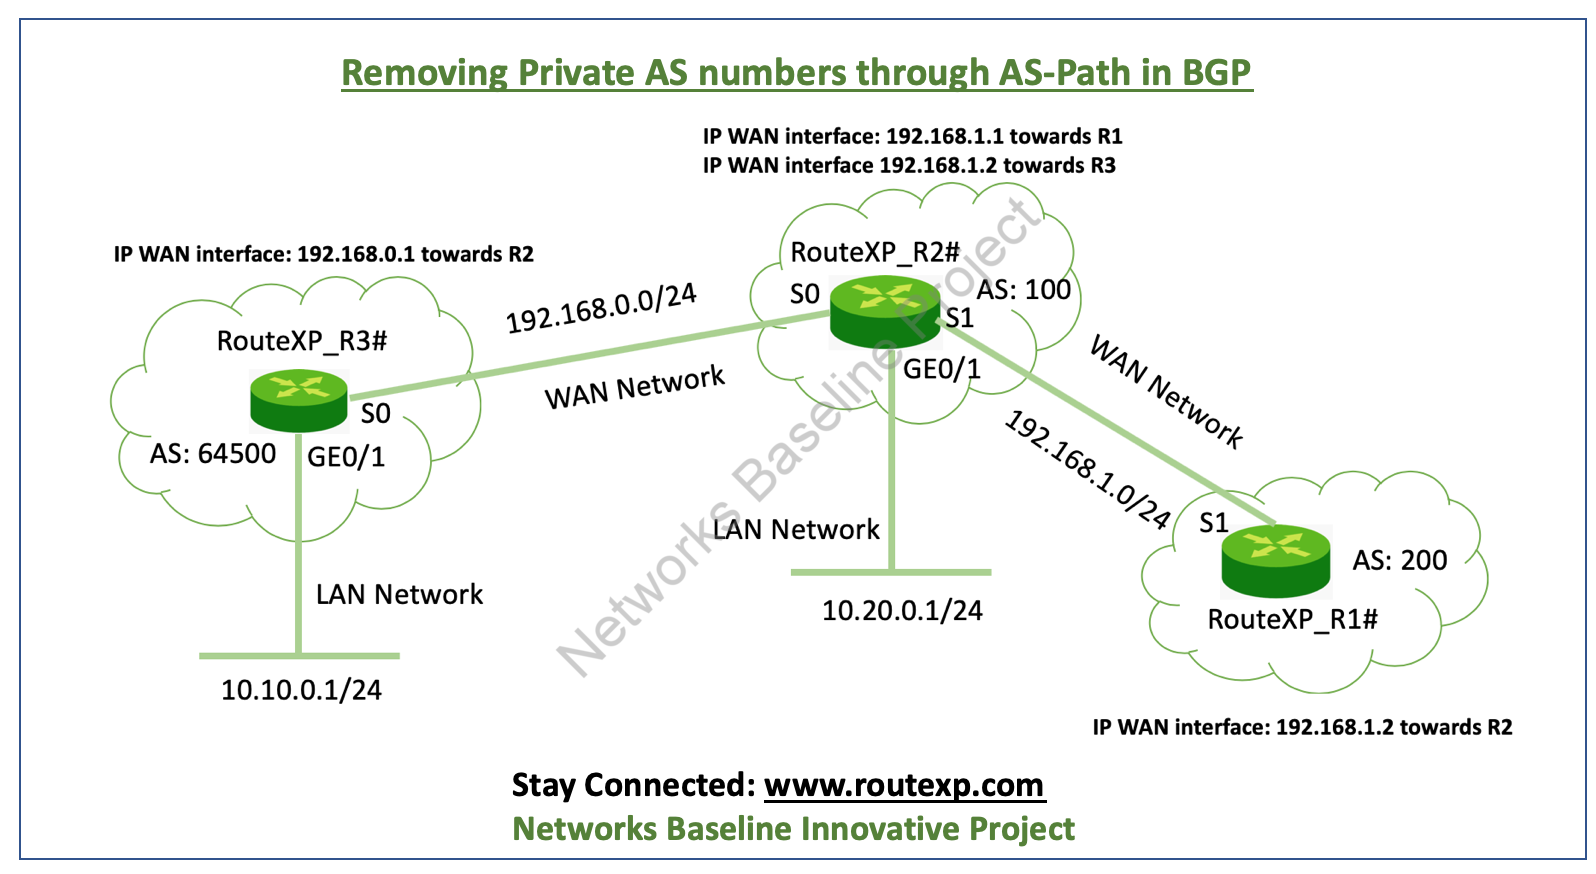 BGP Attribute: Removing Private AS Numbers from the AS Path - Route